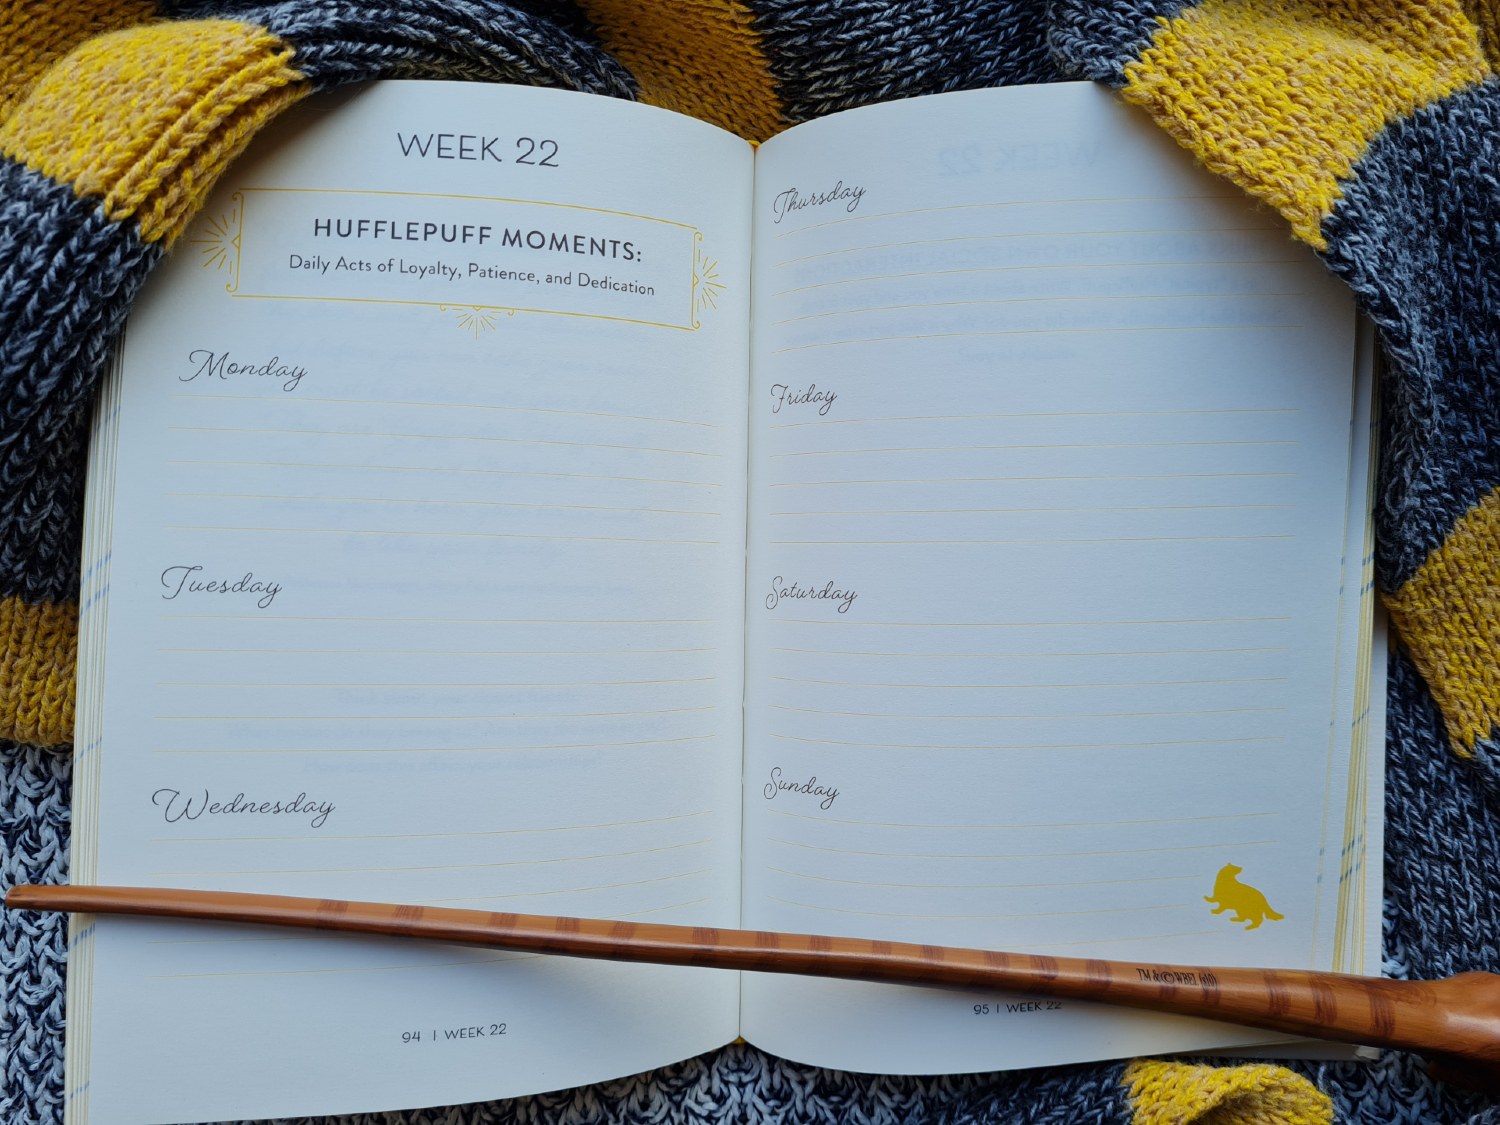 Daily Acts of Loyalty, Patience, and Dedication journal prompt